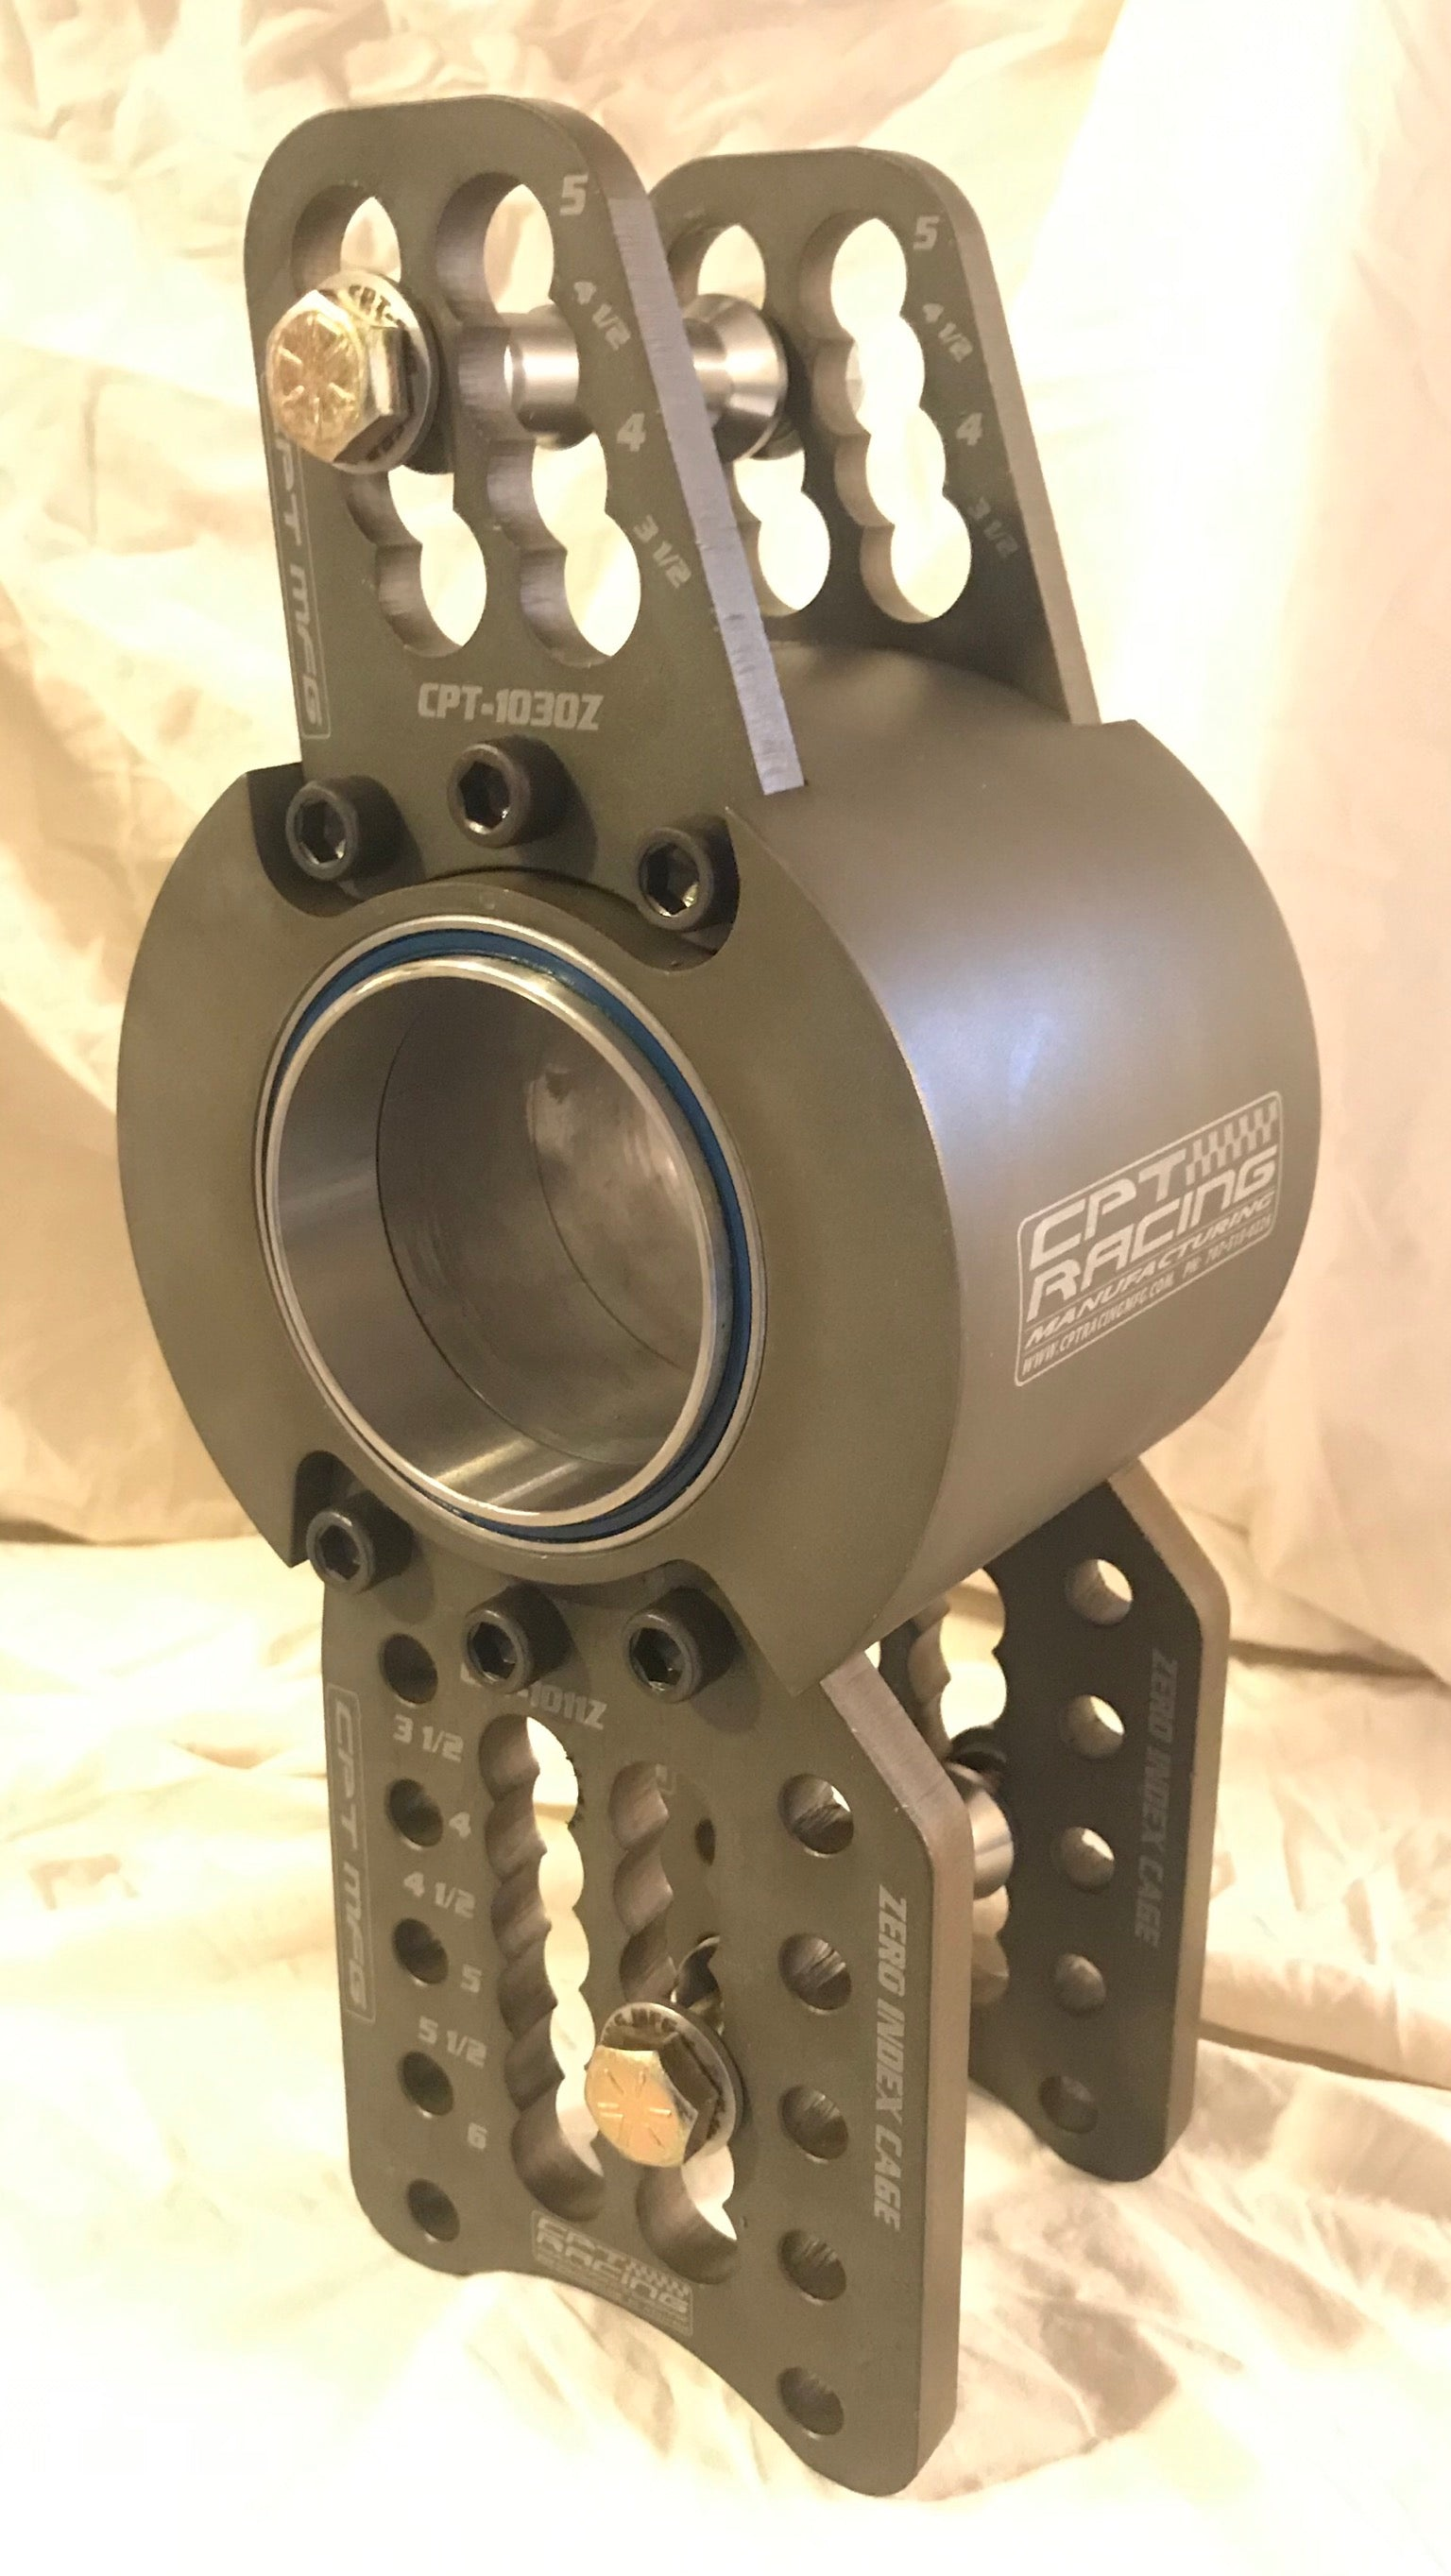 HEAVY ZERO INDEX BIRDCAGE (35lbs) - Part#: CPT-305HZ